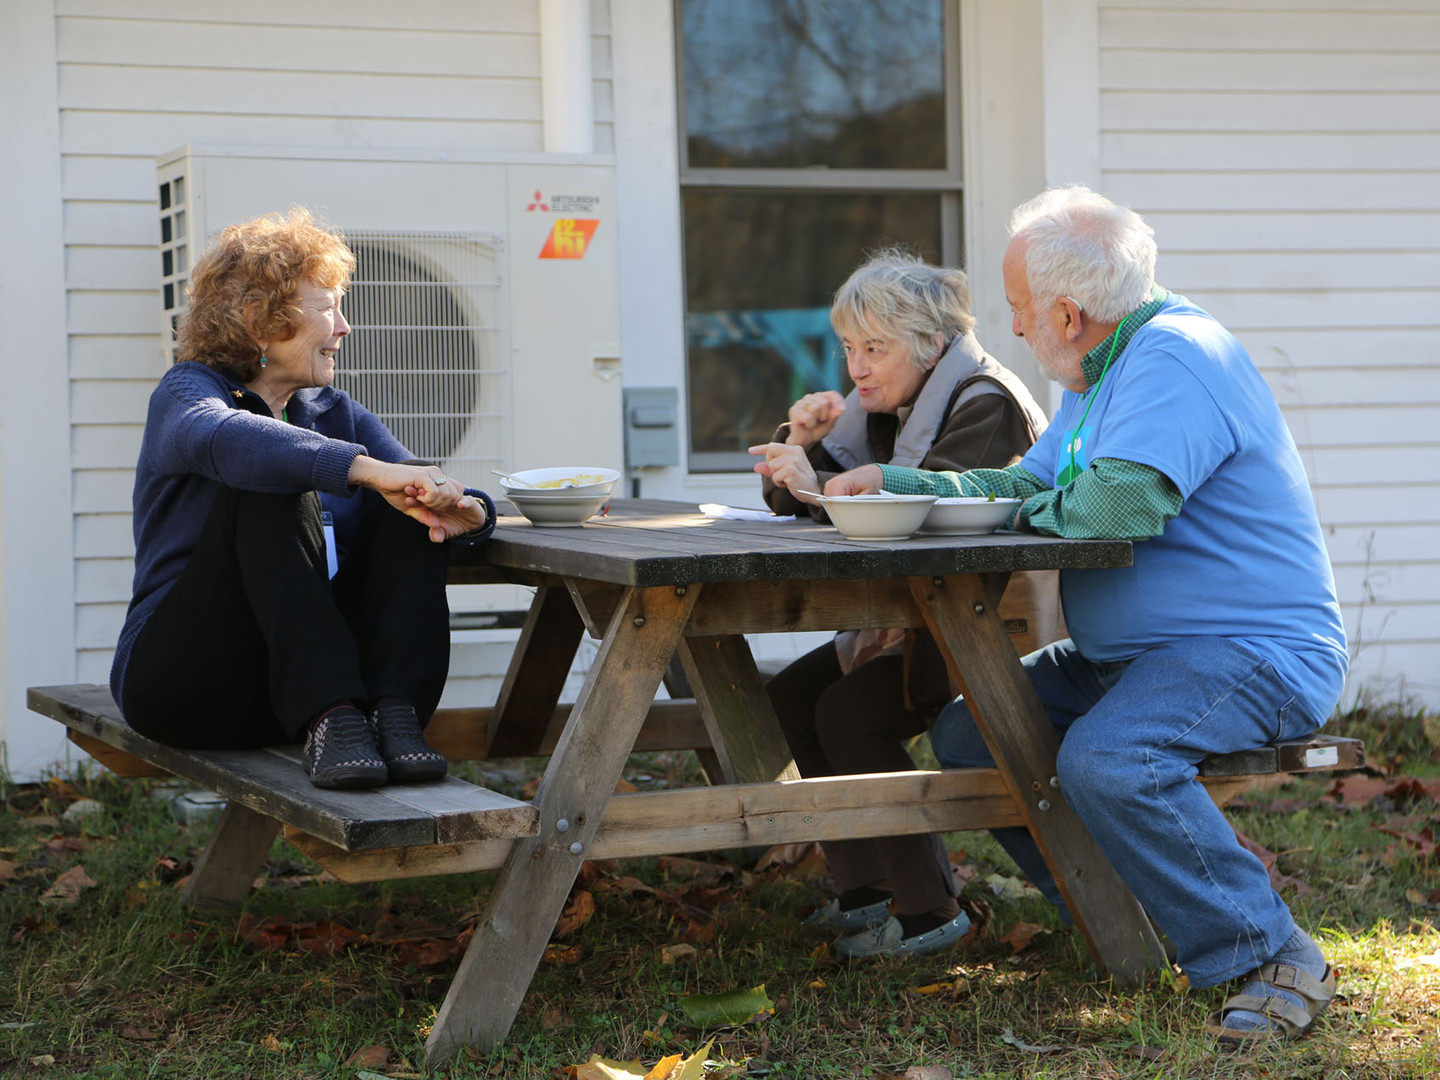 Sharon, Susan and Tom take a break during dialogue session